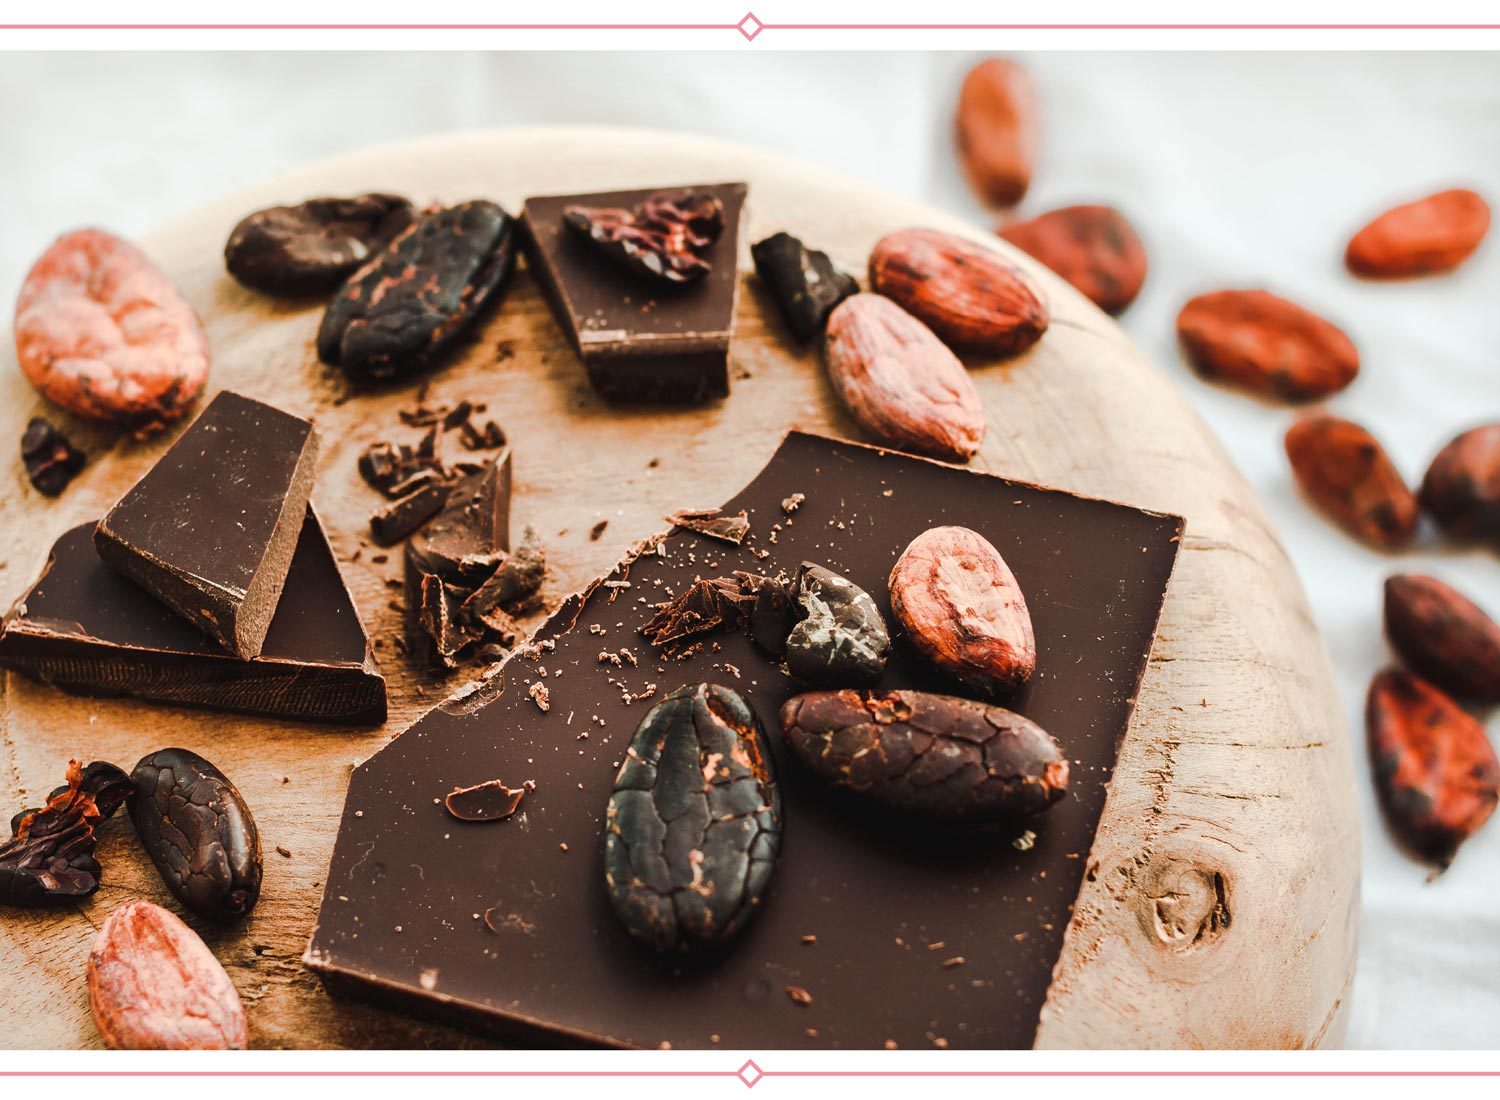 dark chocolate pieces and cocoa beans